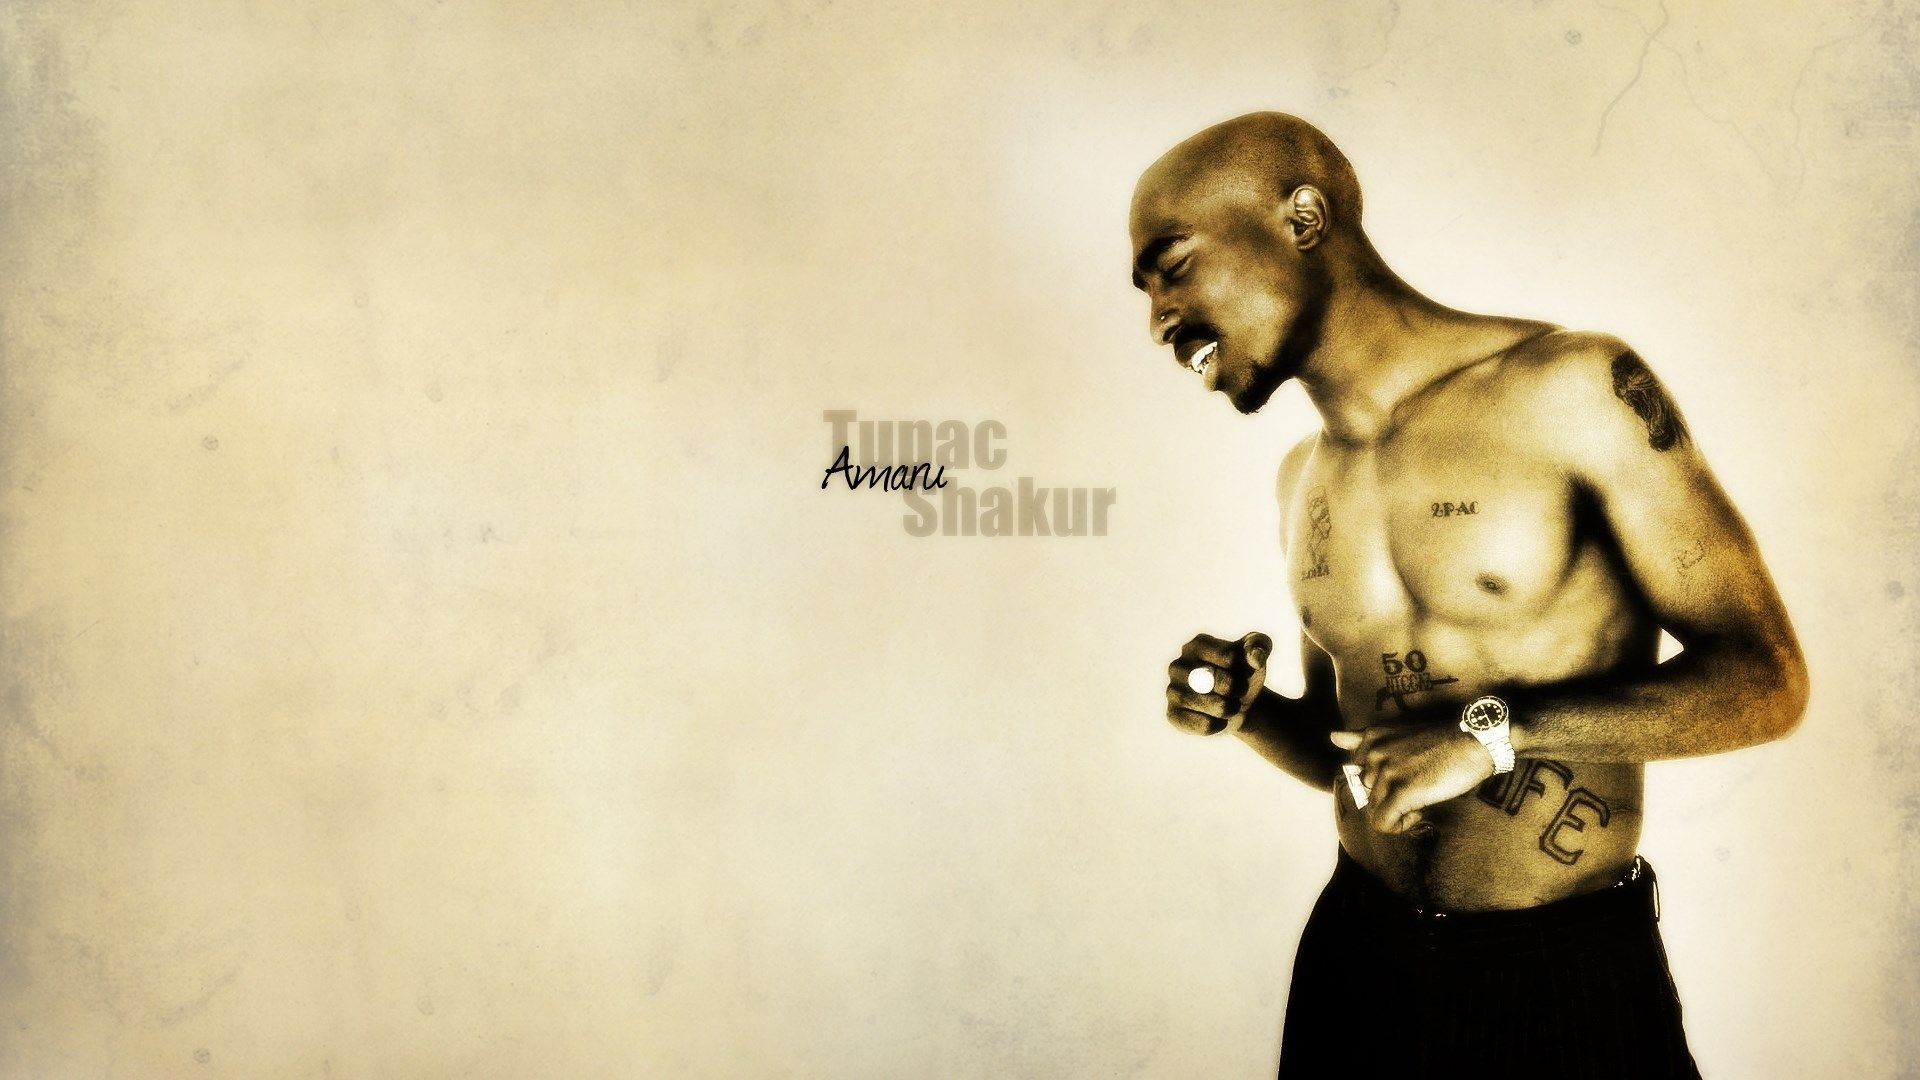 1920x1080 px high resolution wallpapers 2pac wallpaper by meridian 1920x1080 px high resolution wallpapers 2pac wallpaper by meridian ross for pocketfullofgrace altavistaventures Gallery